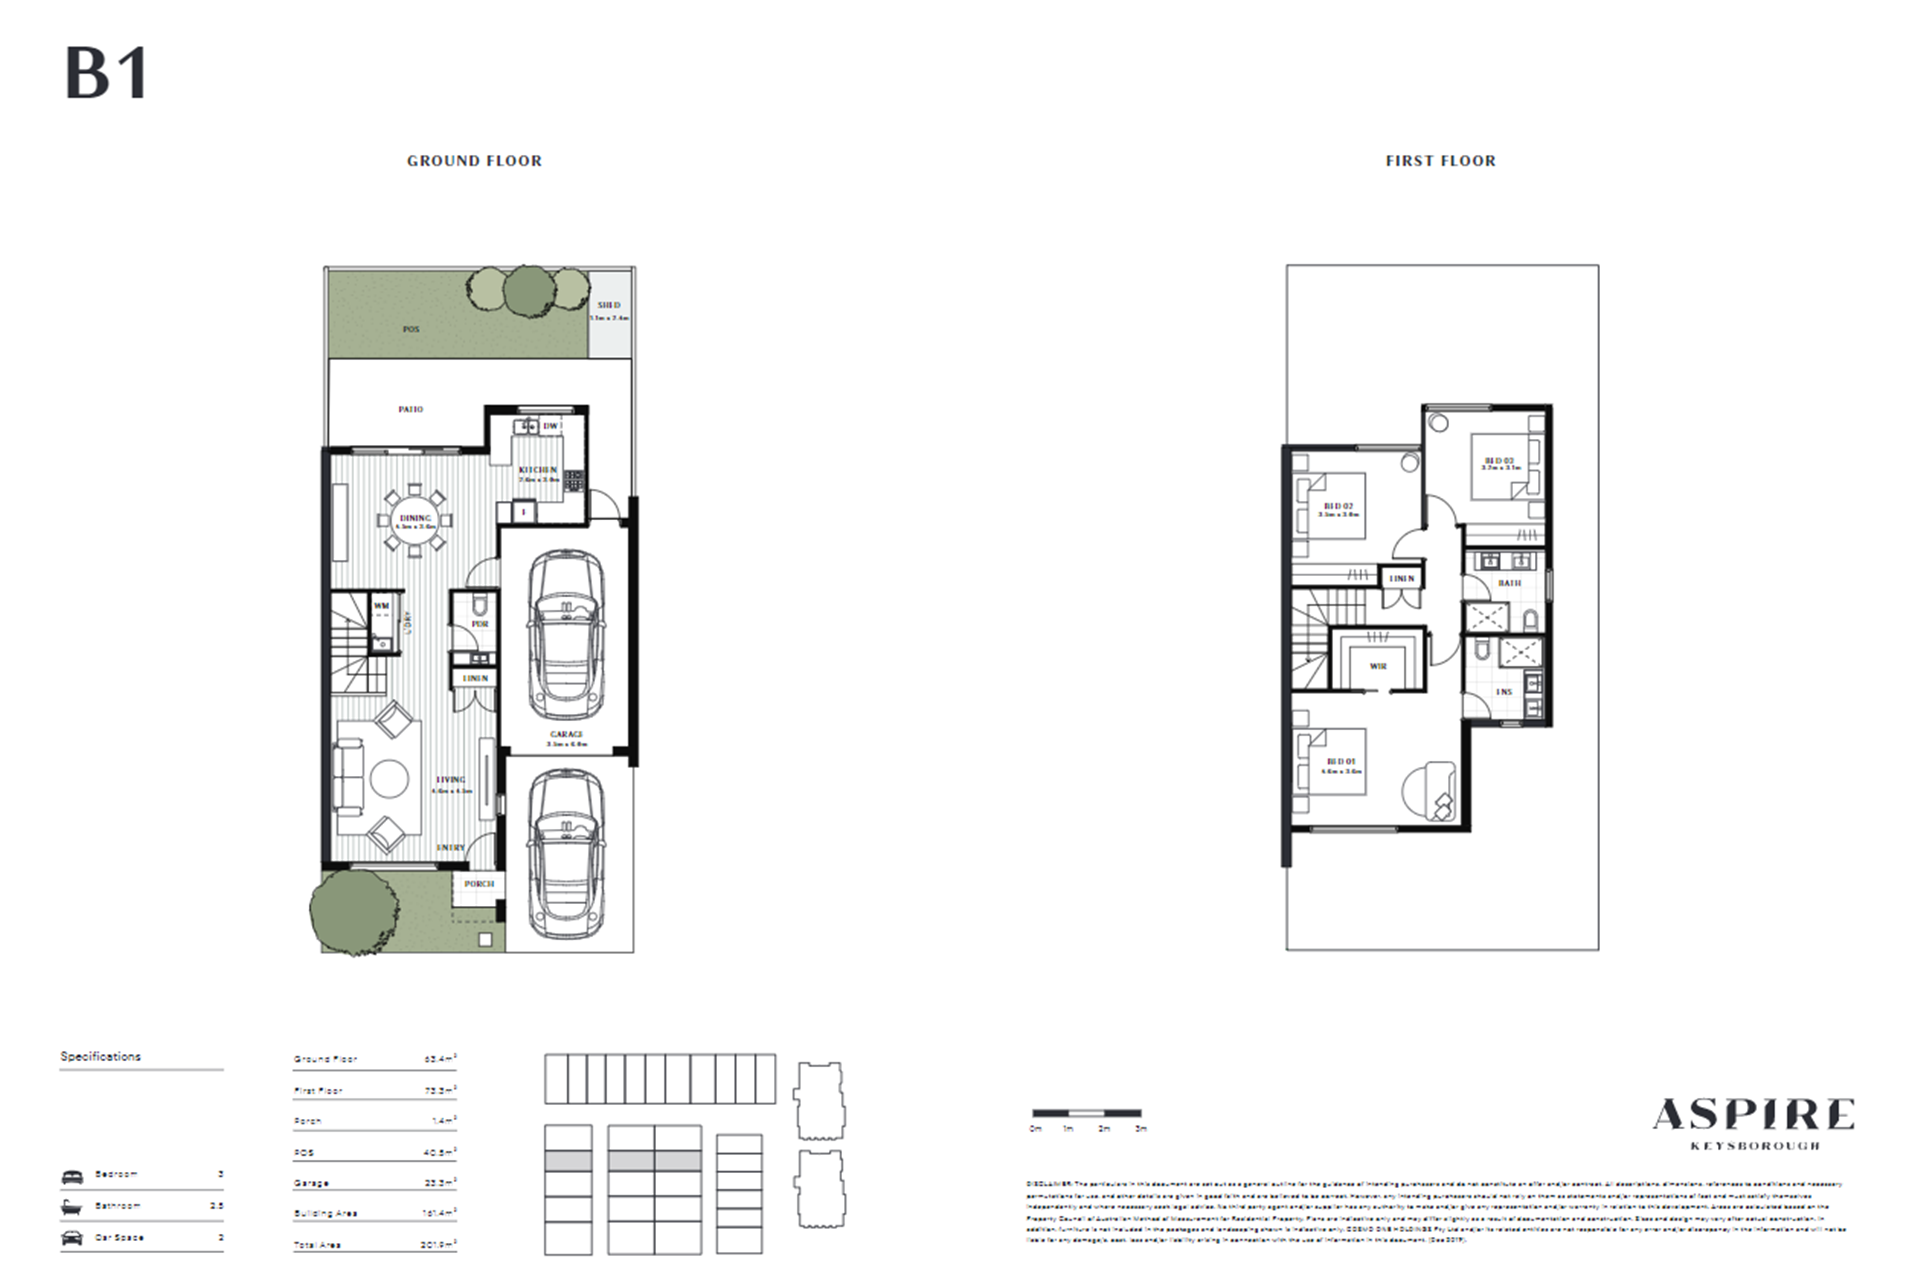 Aspire   B1 Floor Plan (Townhouse)